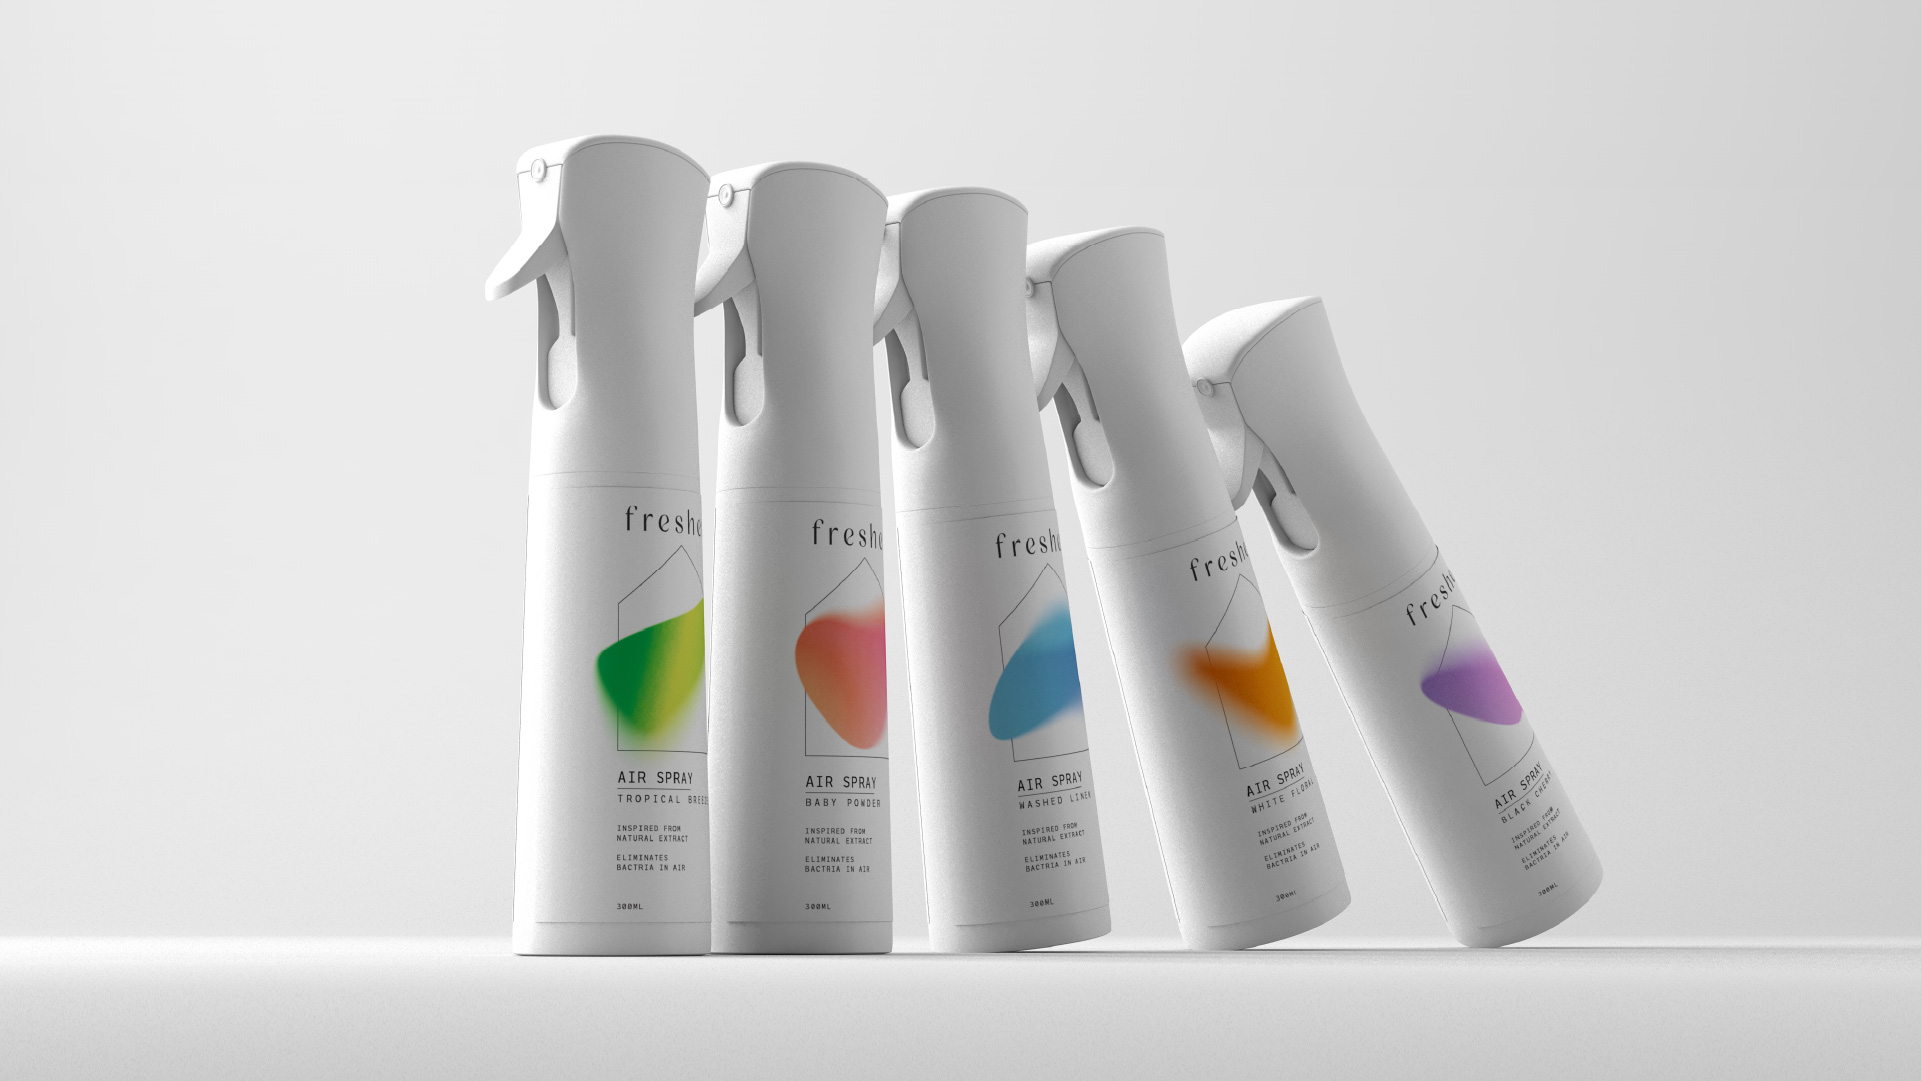 Stamp Works Designs Fresher Air Spray for Fragrance Company